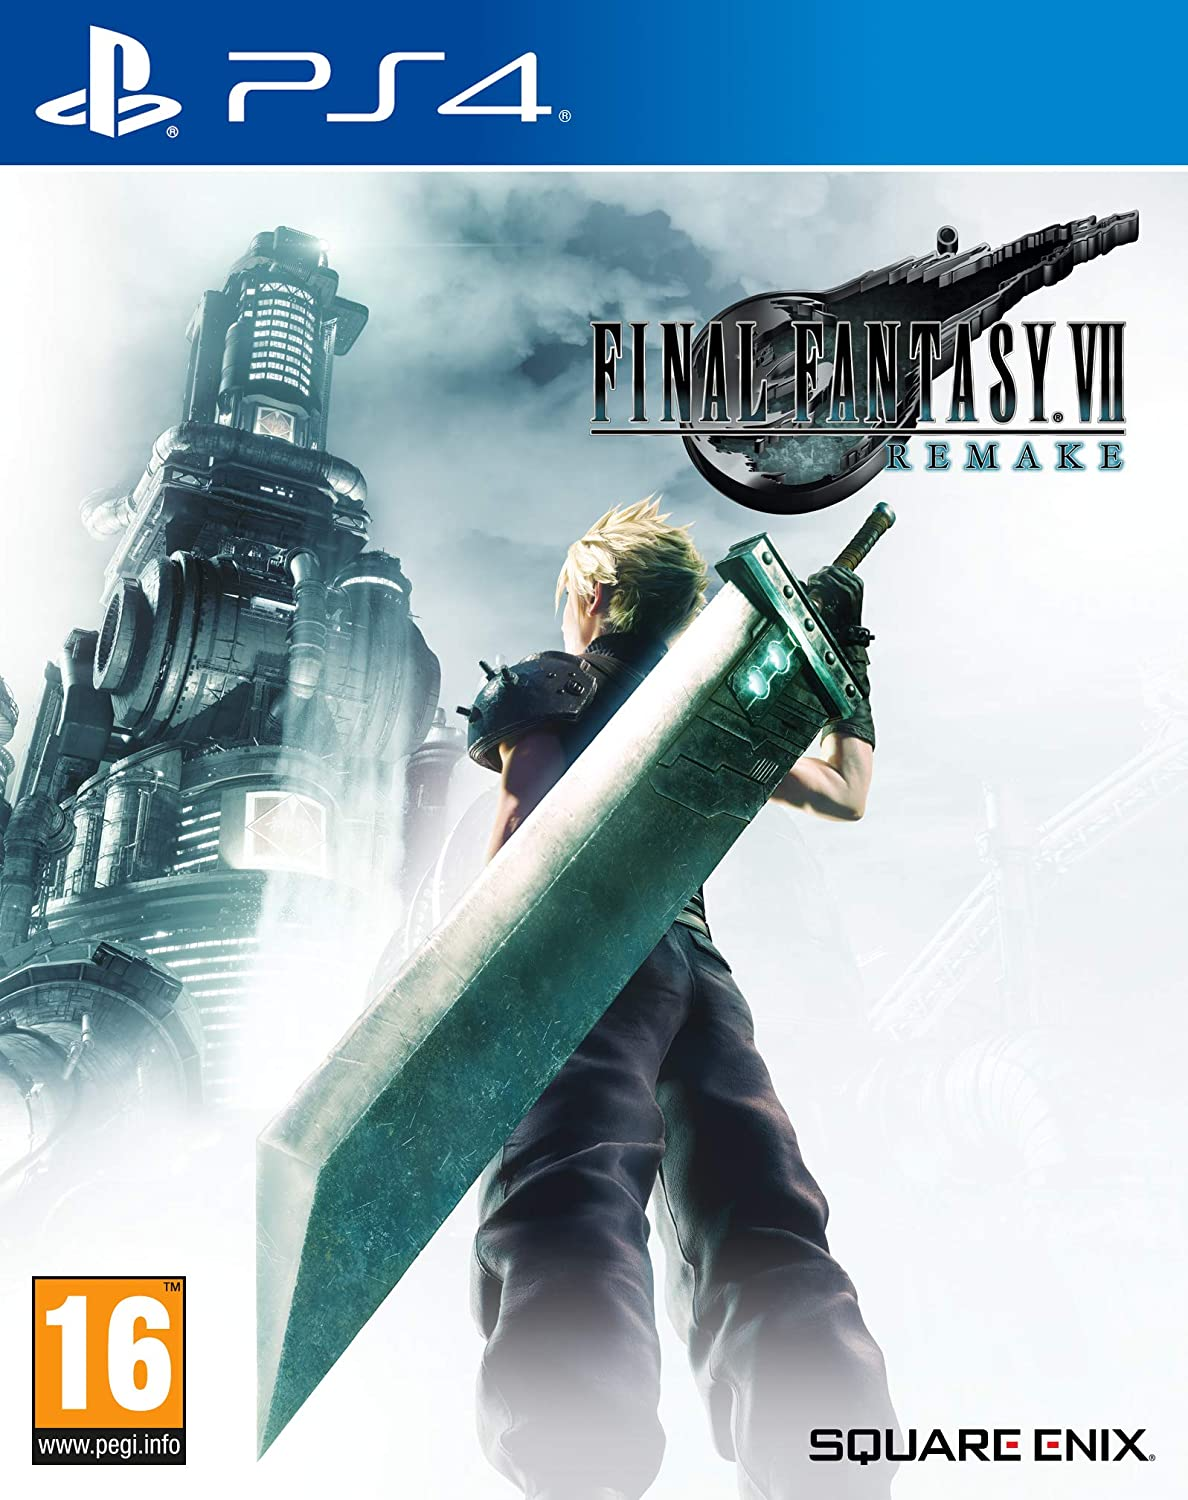 FINAL FANTASY Challenge the lowest price of Japan Brand Cheap Sale Venue VII REMAKE PS4